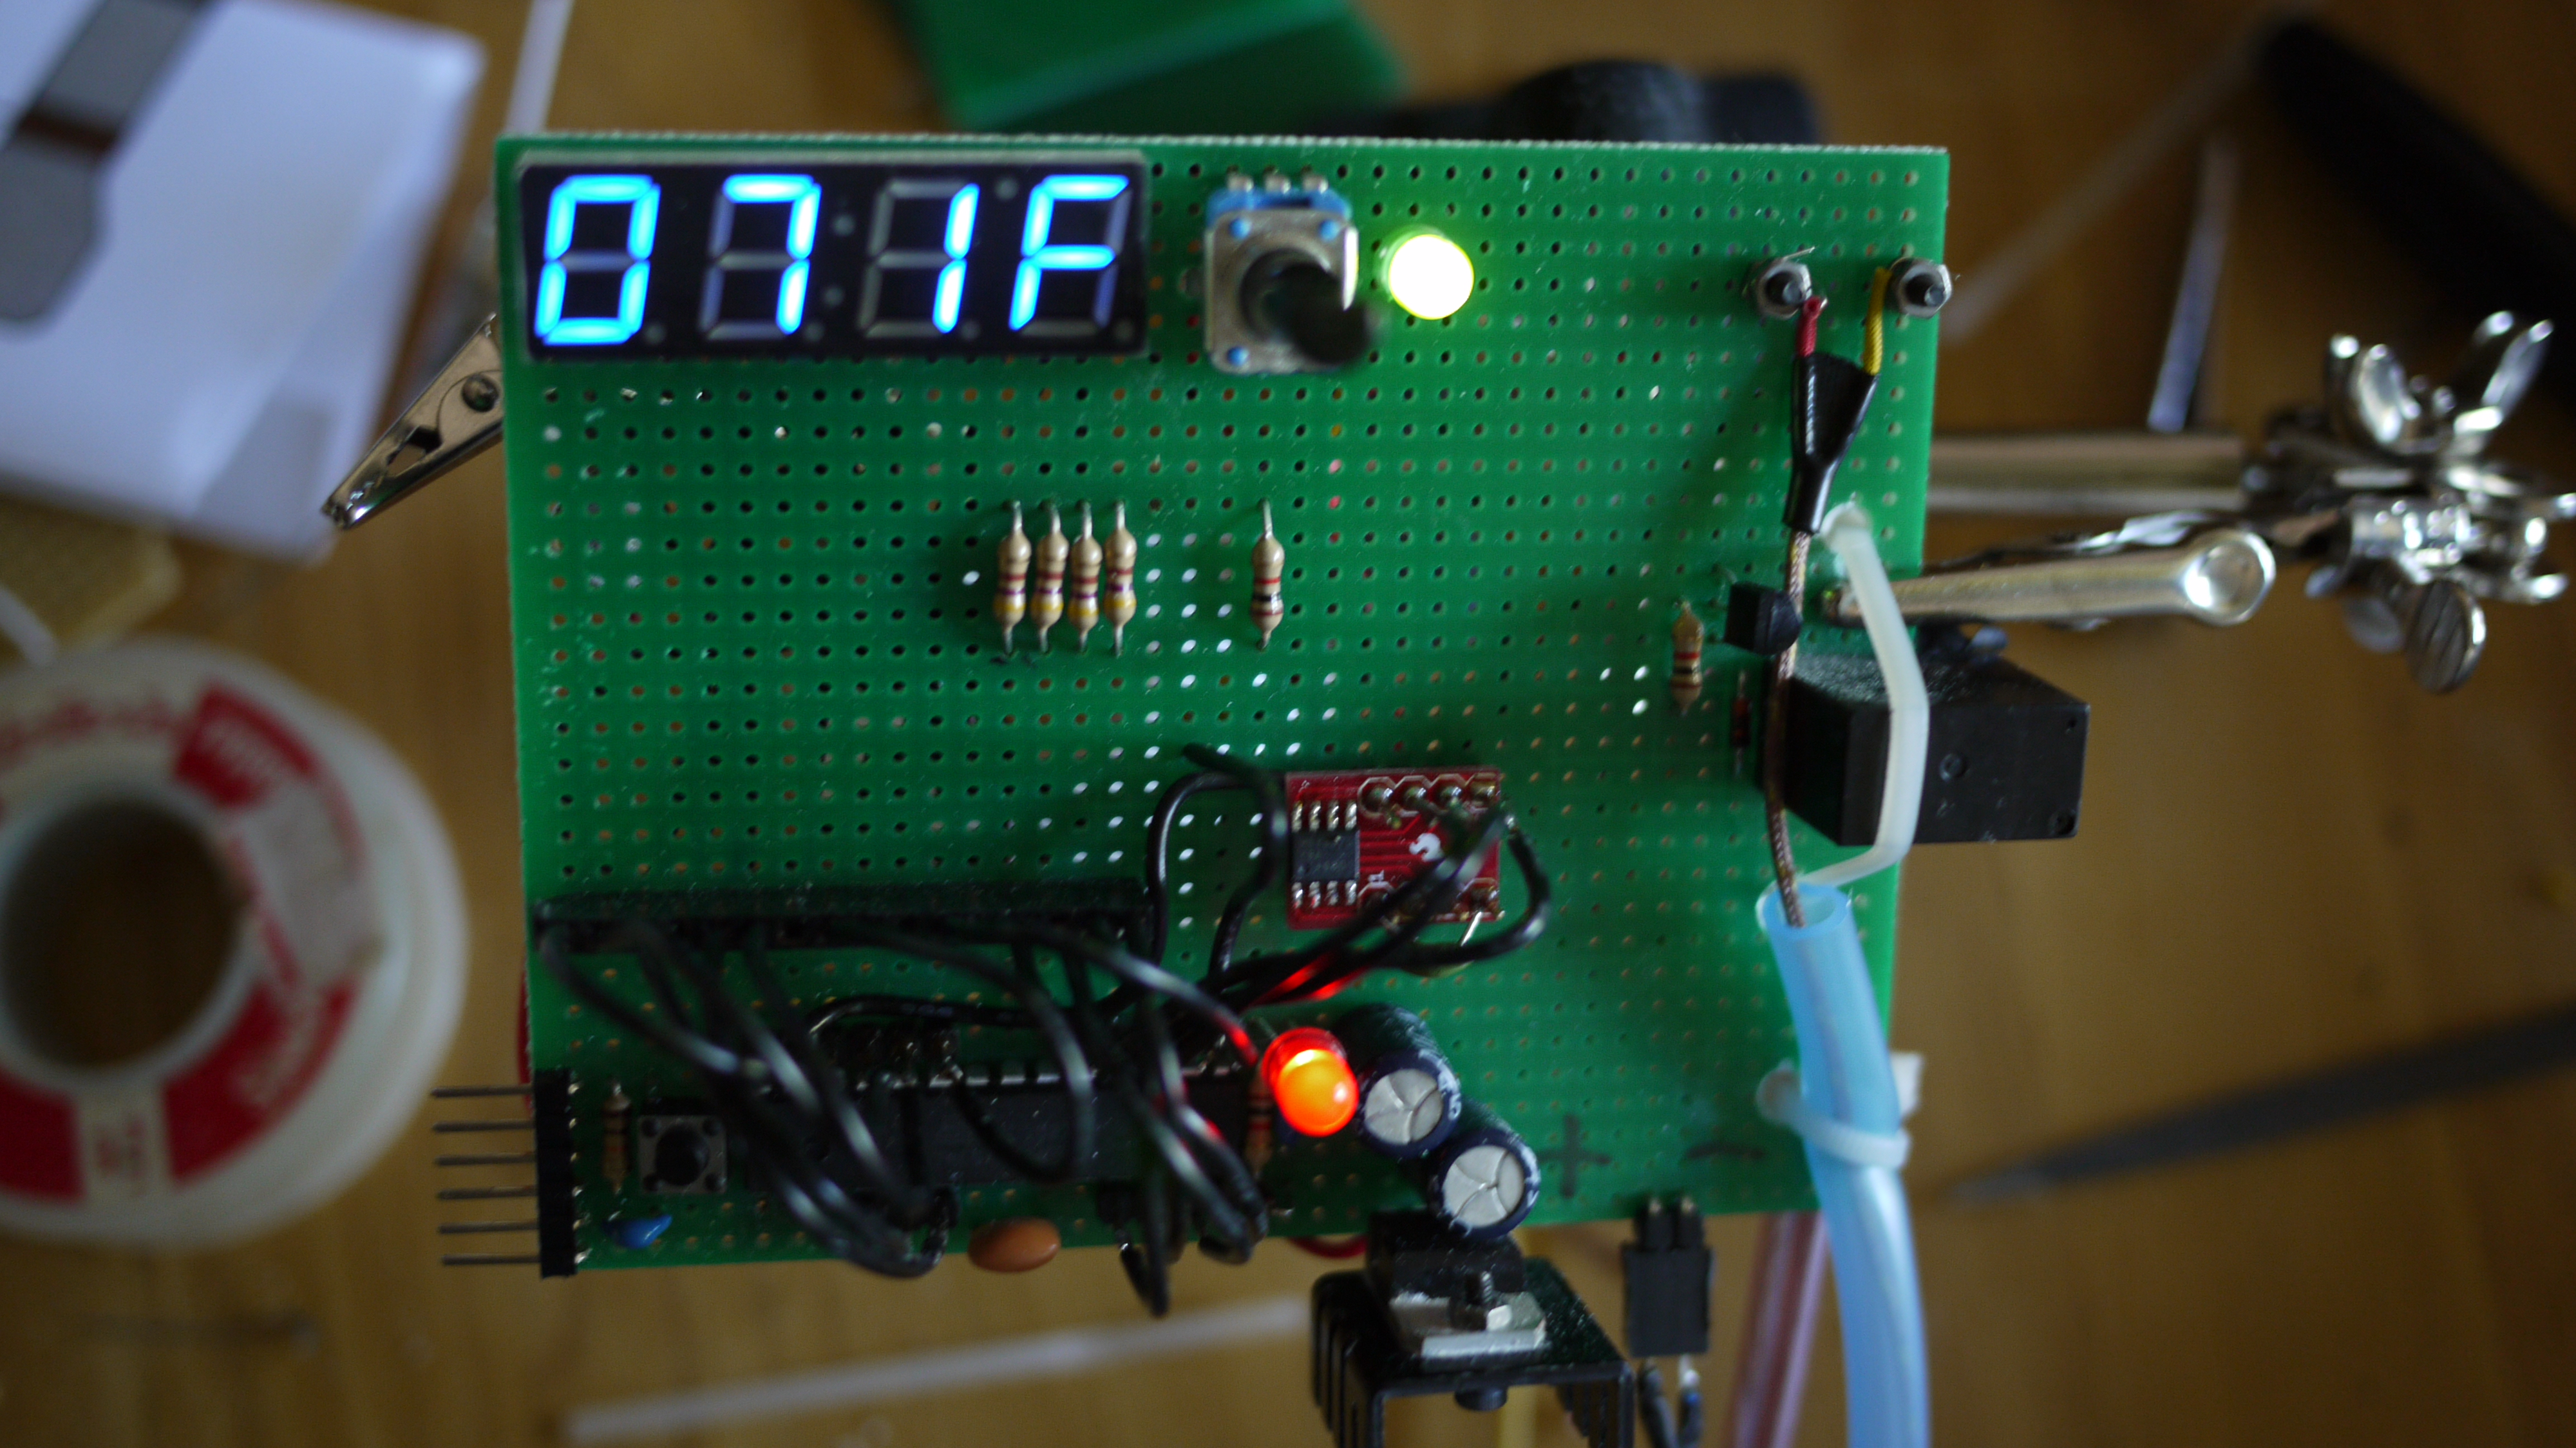 Make your own programmable thermostat for $66 with Arduino